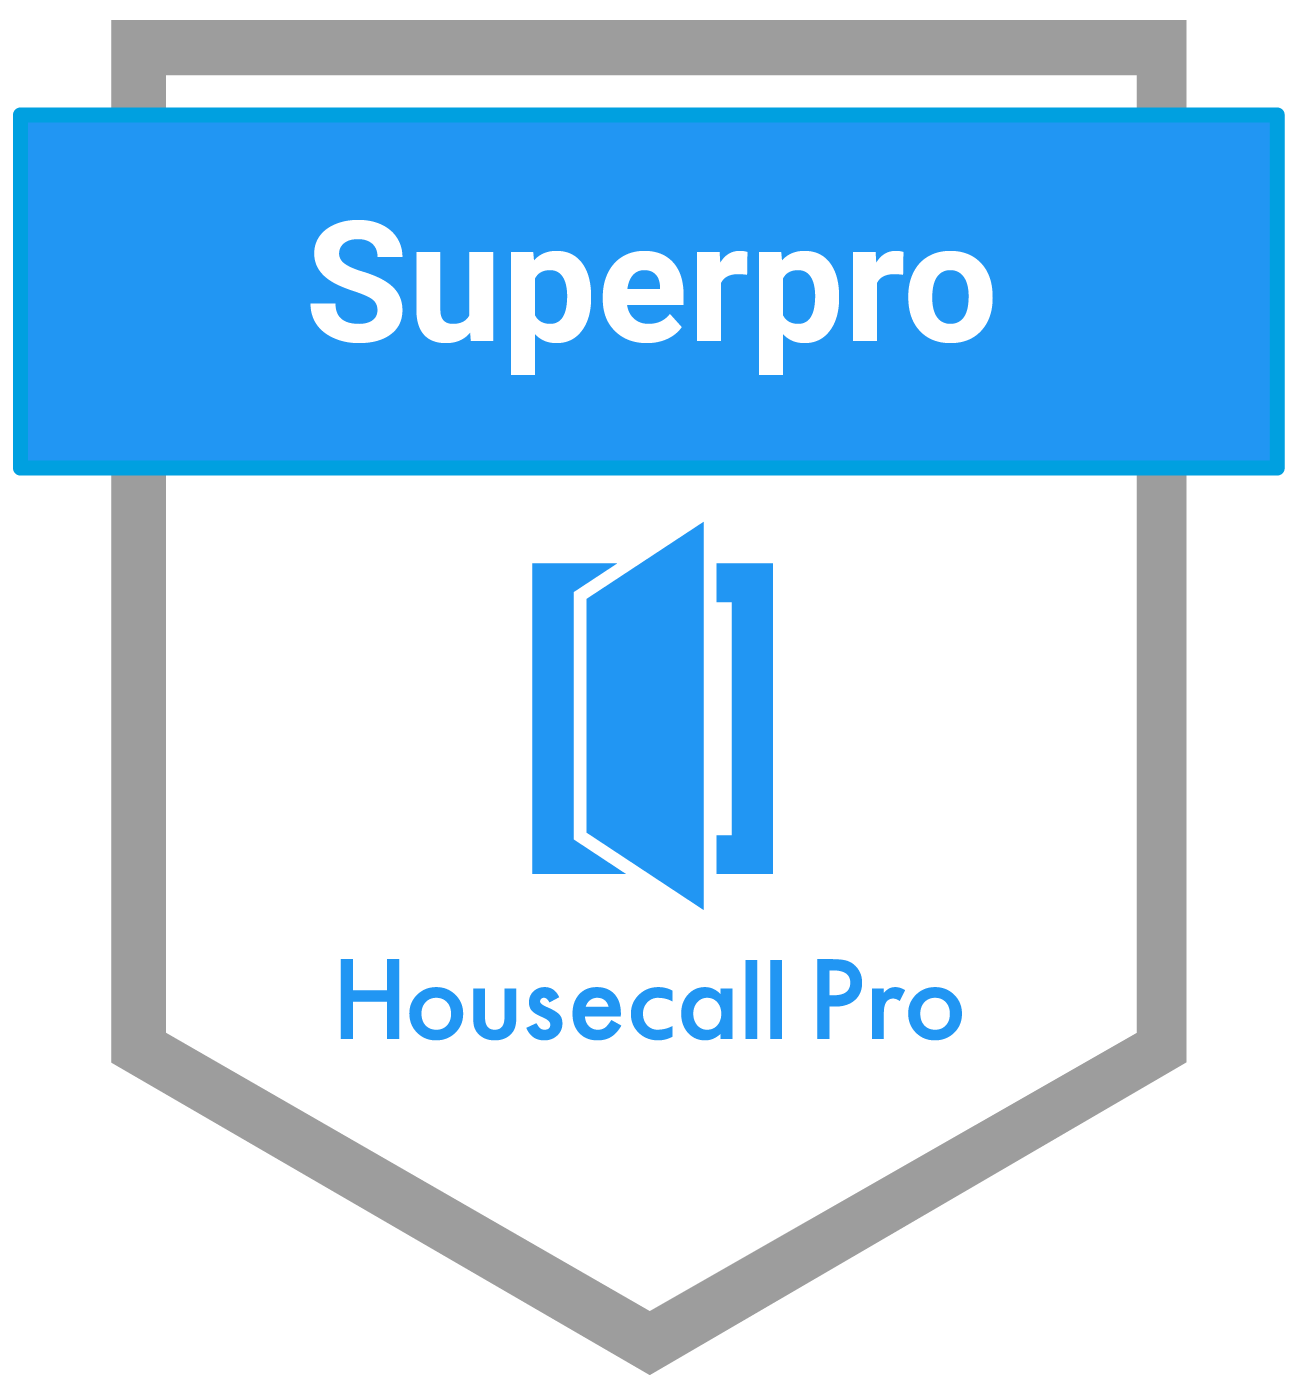 We've been awarded the Housecall Pro Superpro award